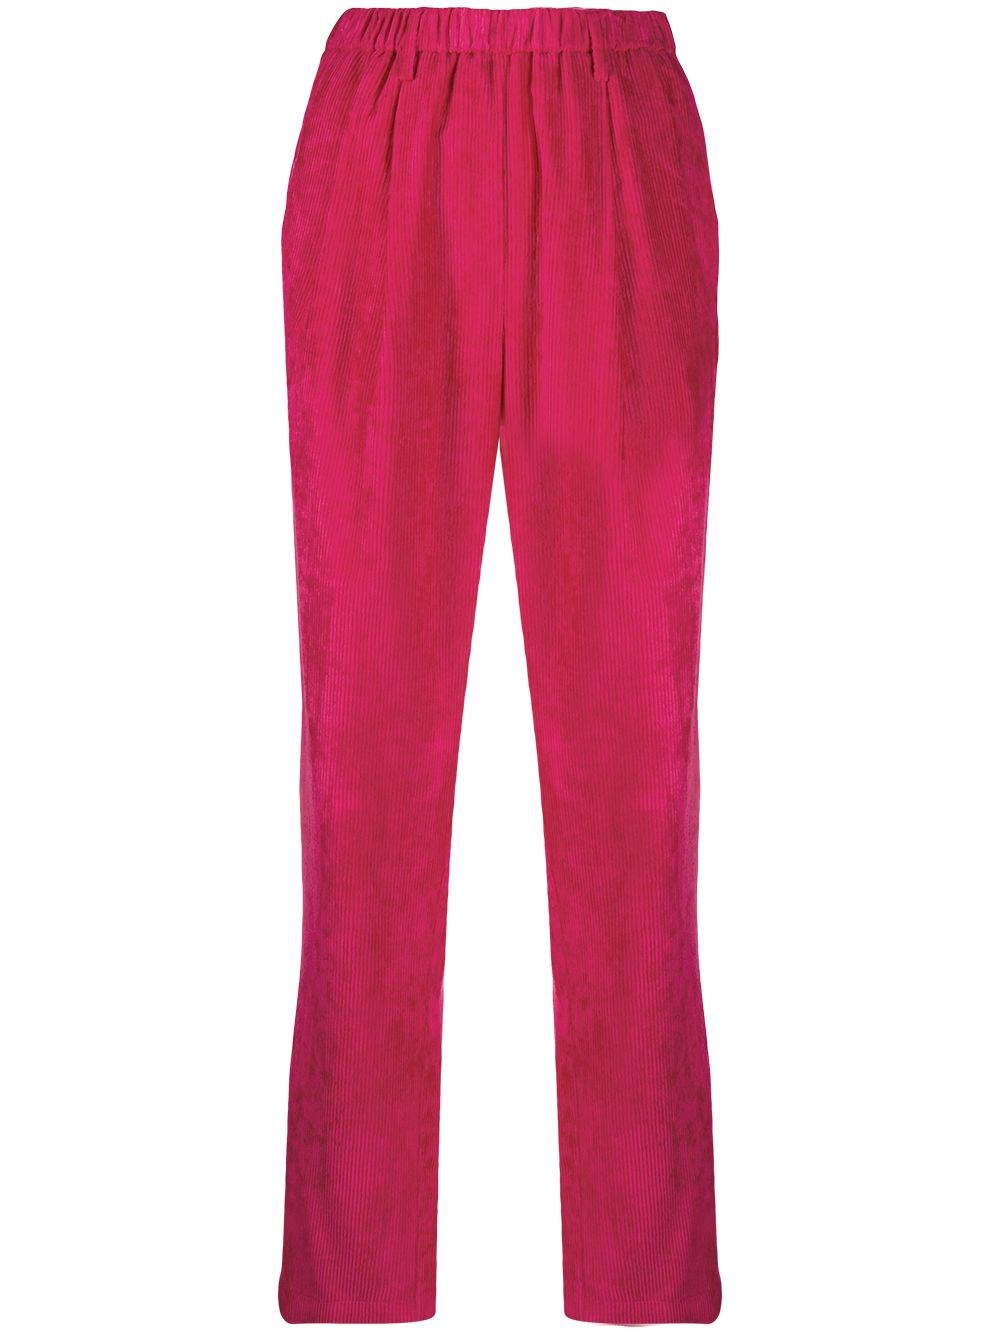 FORTE_FORTE Pink Corduroy Finish Trousers